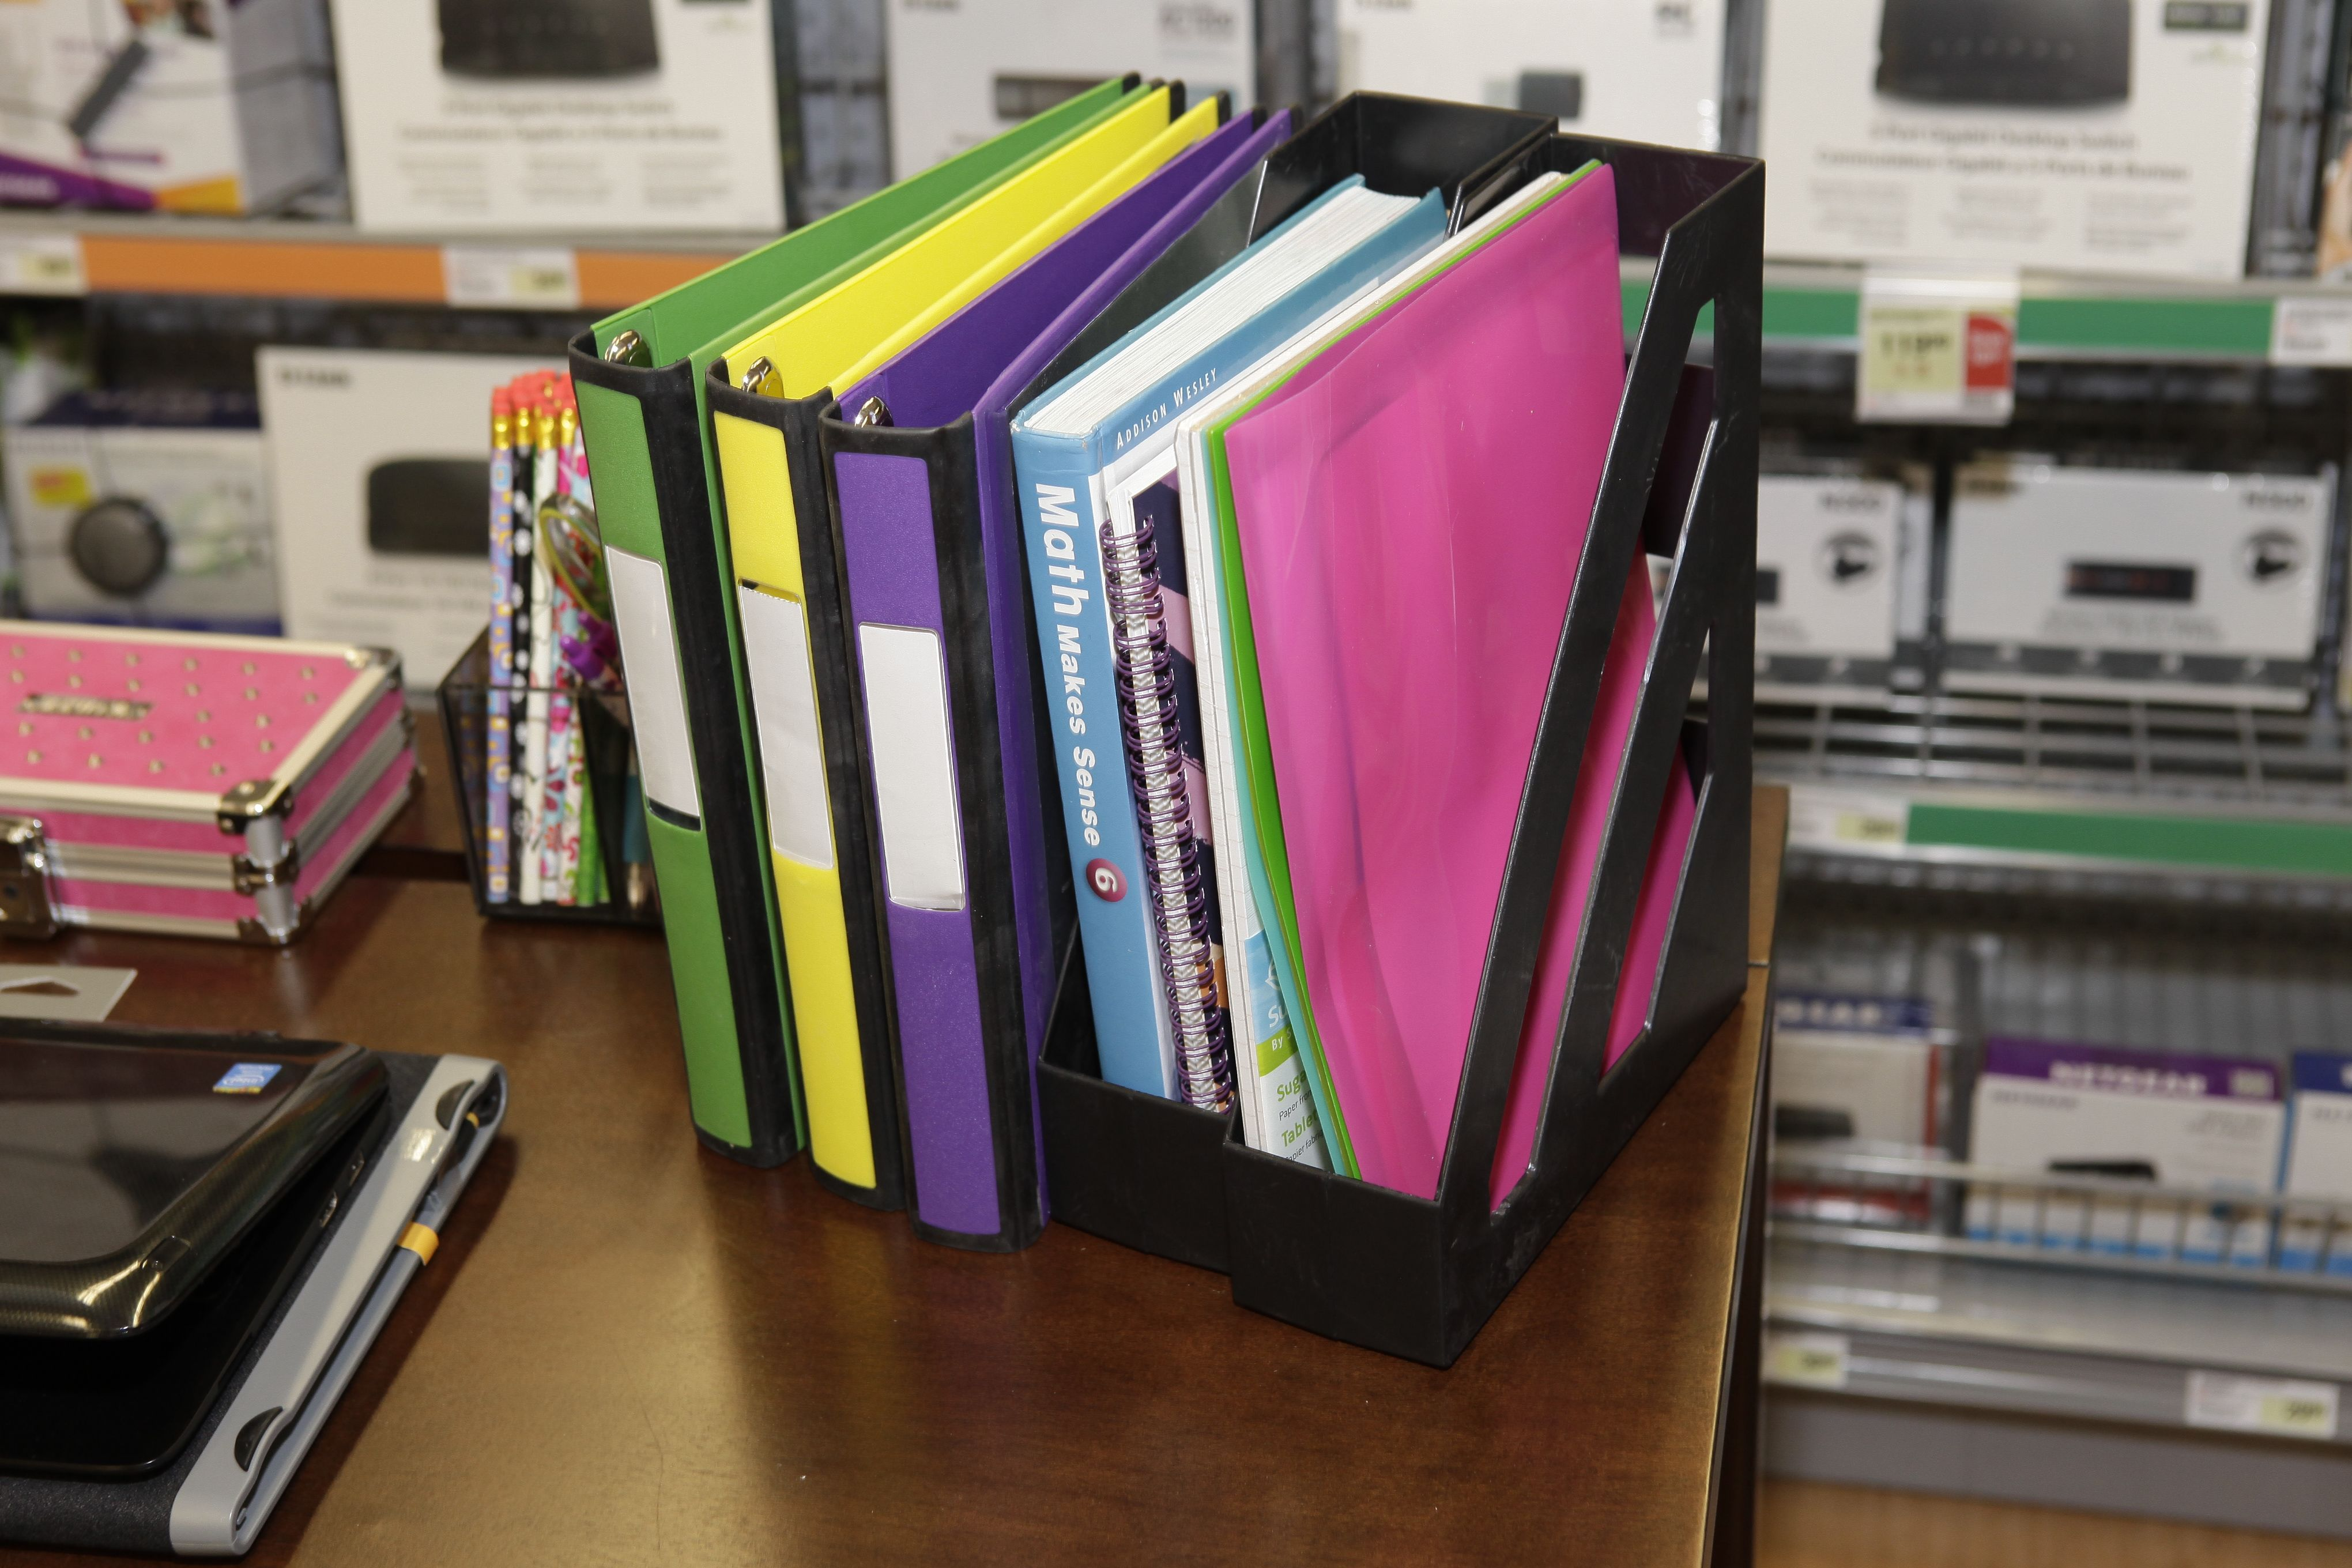 Desktop Organizers And Holders Help You Keep Things Neat And Make It Easy To Find What You Re Looking For Homework Organization Desktop Organization Organization